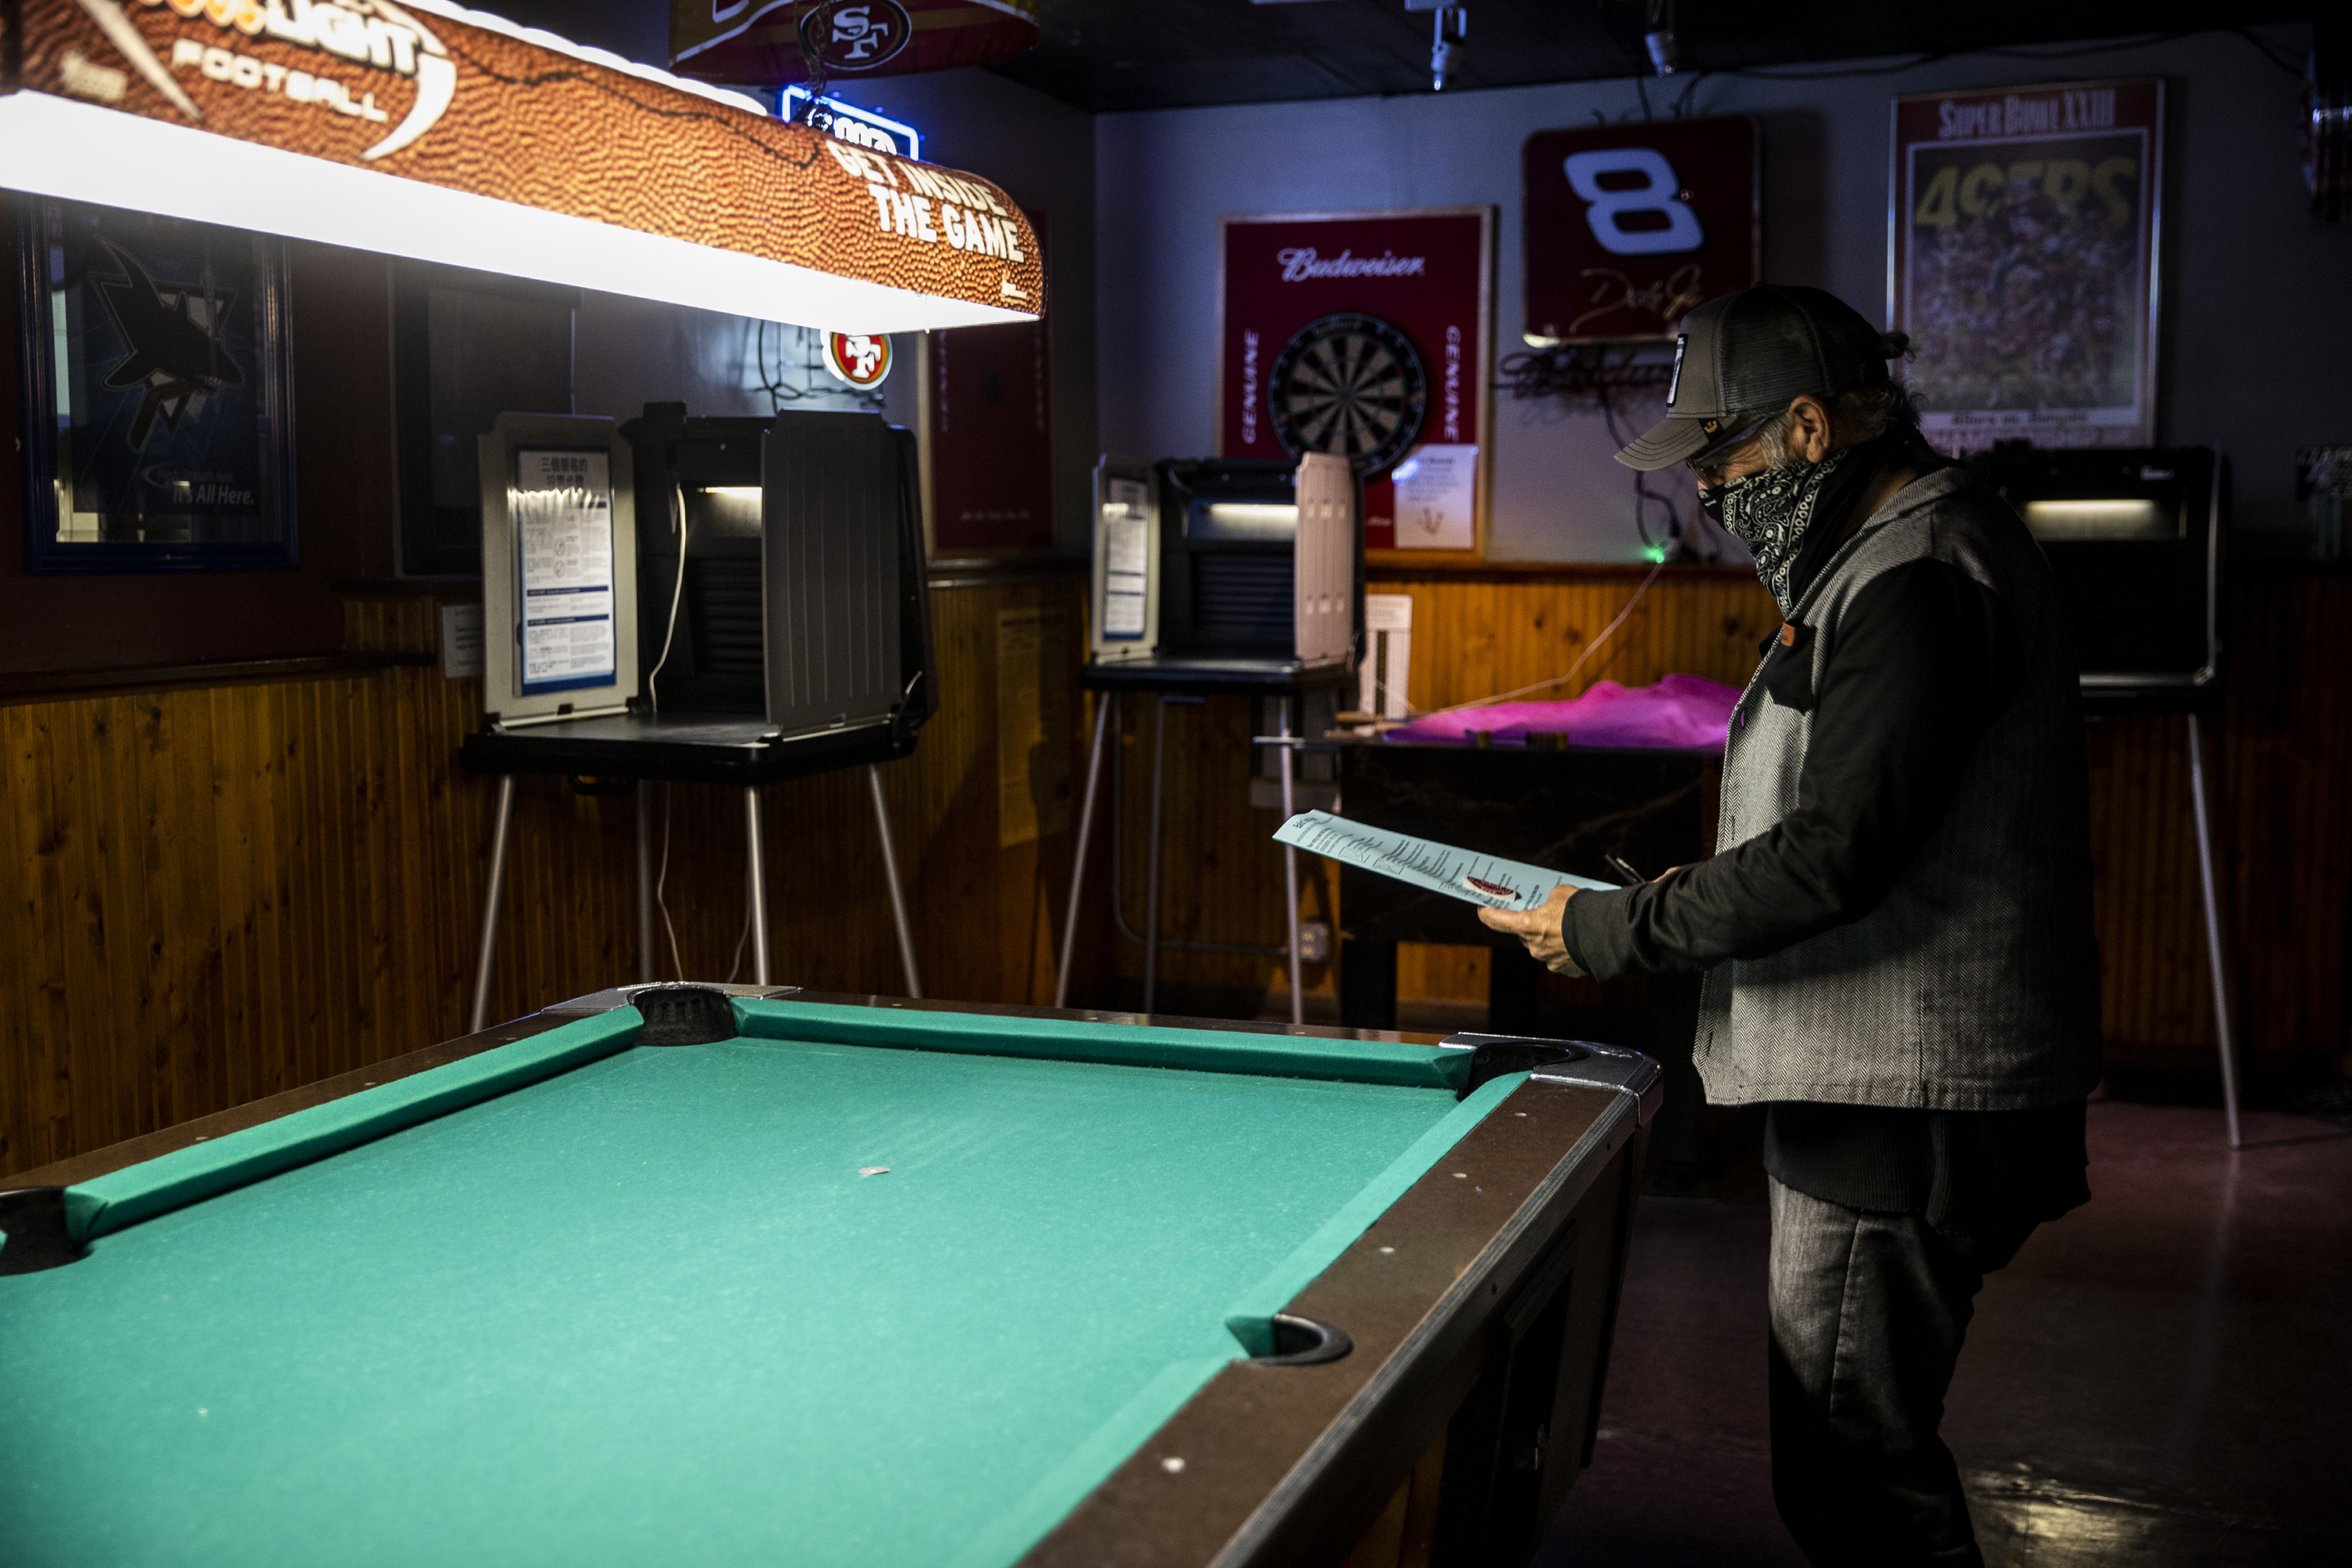 Man reviewing his ballot in front of a pool table.